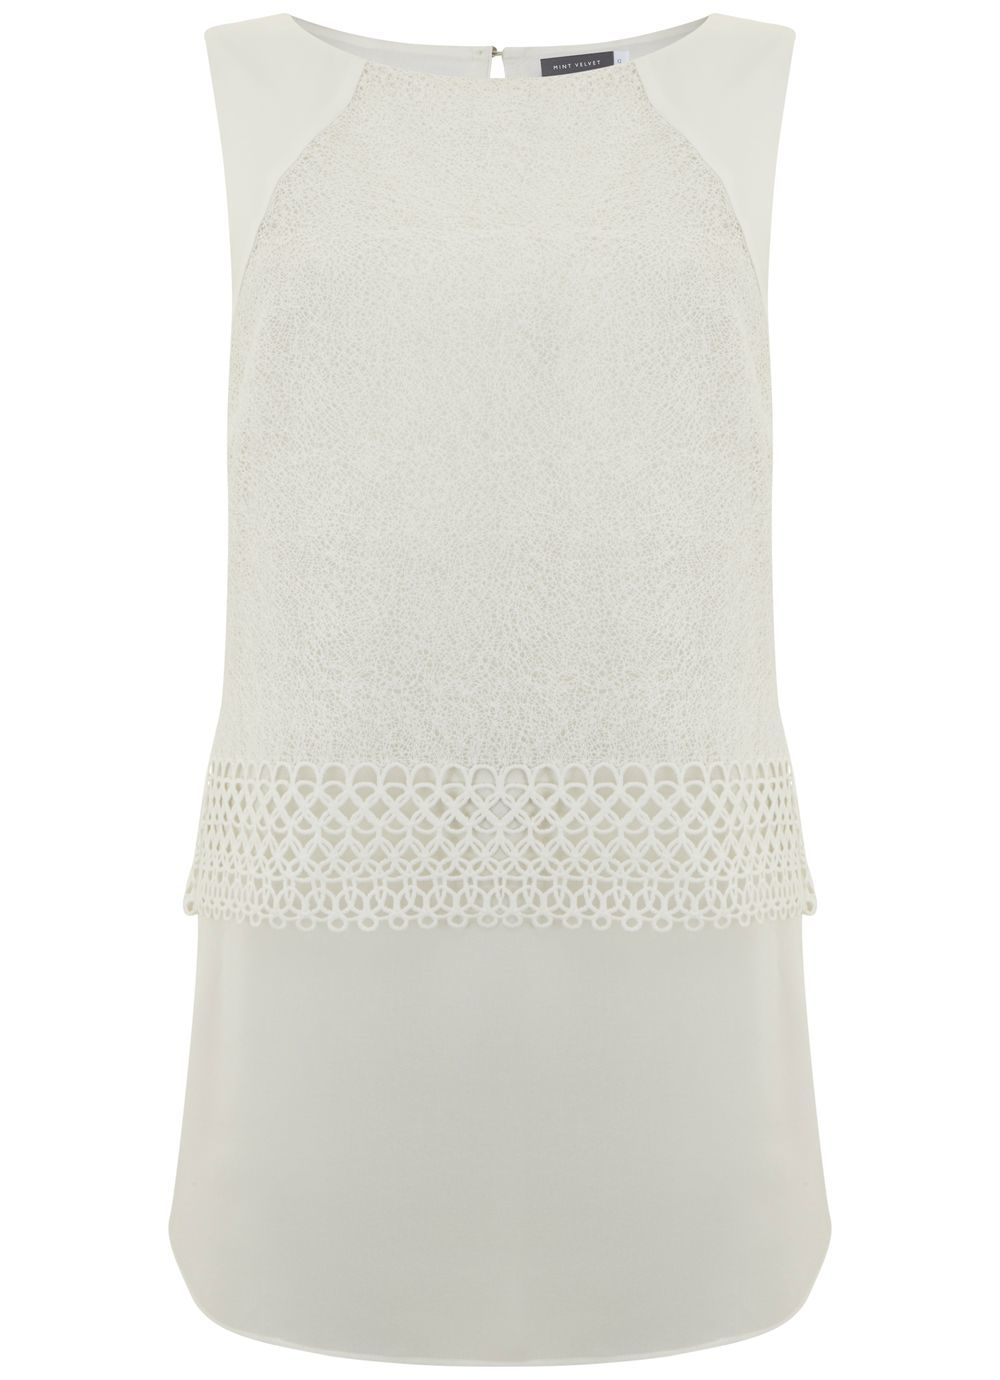 Ivory Mesh Lace Shell Top, Ivory - pattern: plain; sleeve style: sleeveless; style: vest top; predominant colour: ivory/cream; occasions: casual; length: standard; fibres: polyester/polyamide - 100%; fit: body skimming; neckline: crew; sleeve length: sleeveless; pattern type: fabric; texture group: other - light to midweight; embellishment: lace; season: s/s 2016; wardrobe: highlight